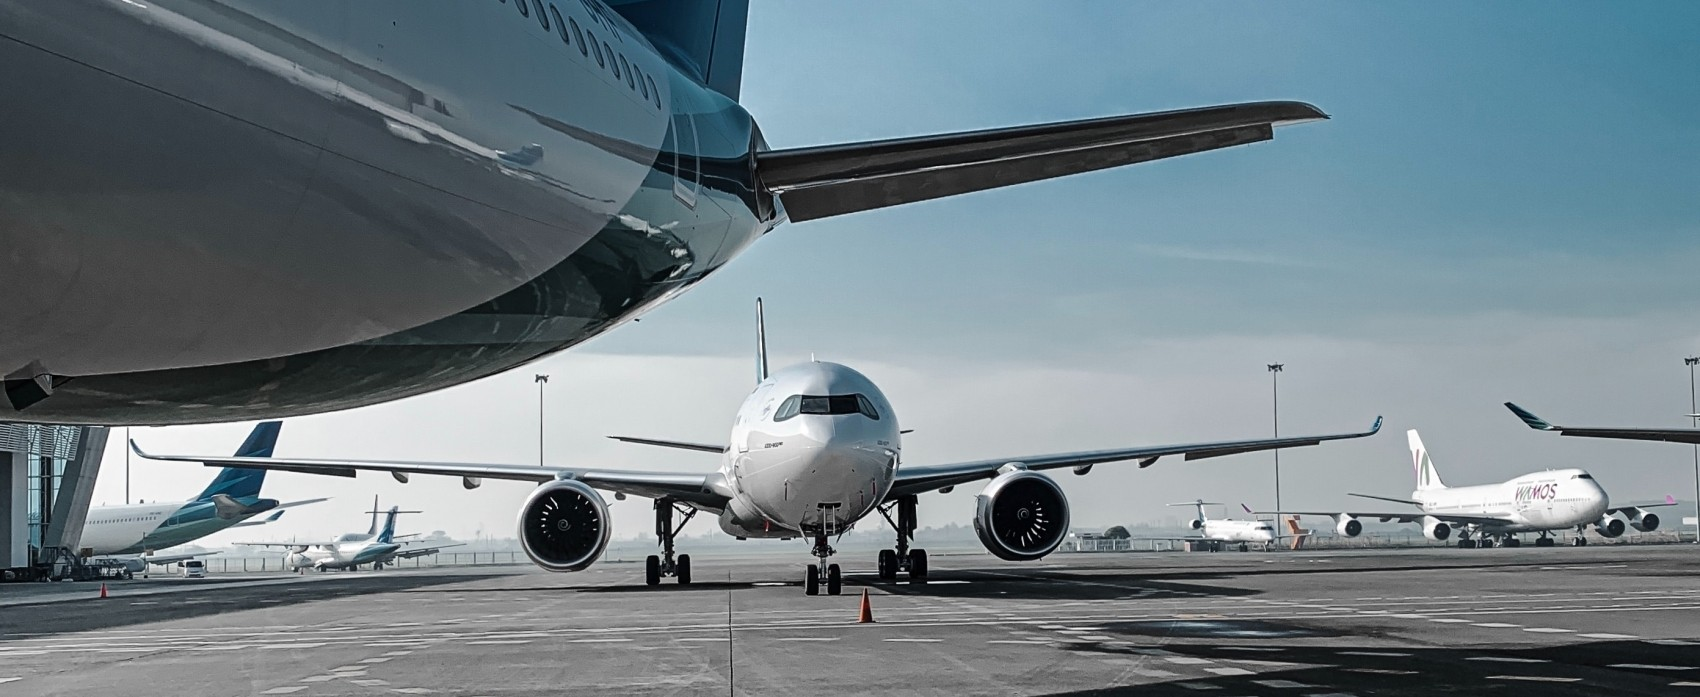 Five Reasons Private Jet Charters are Safer Than Commercial Airlines